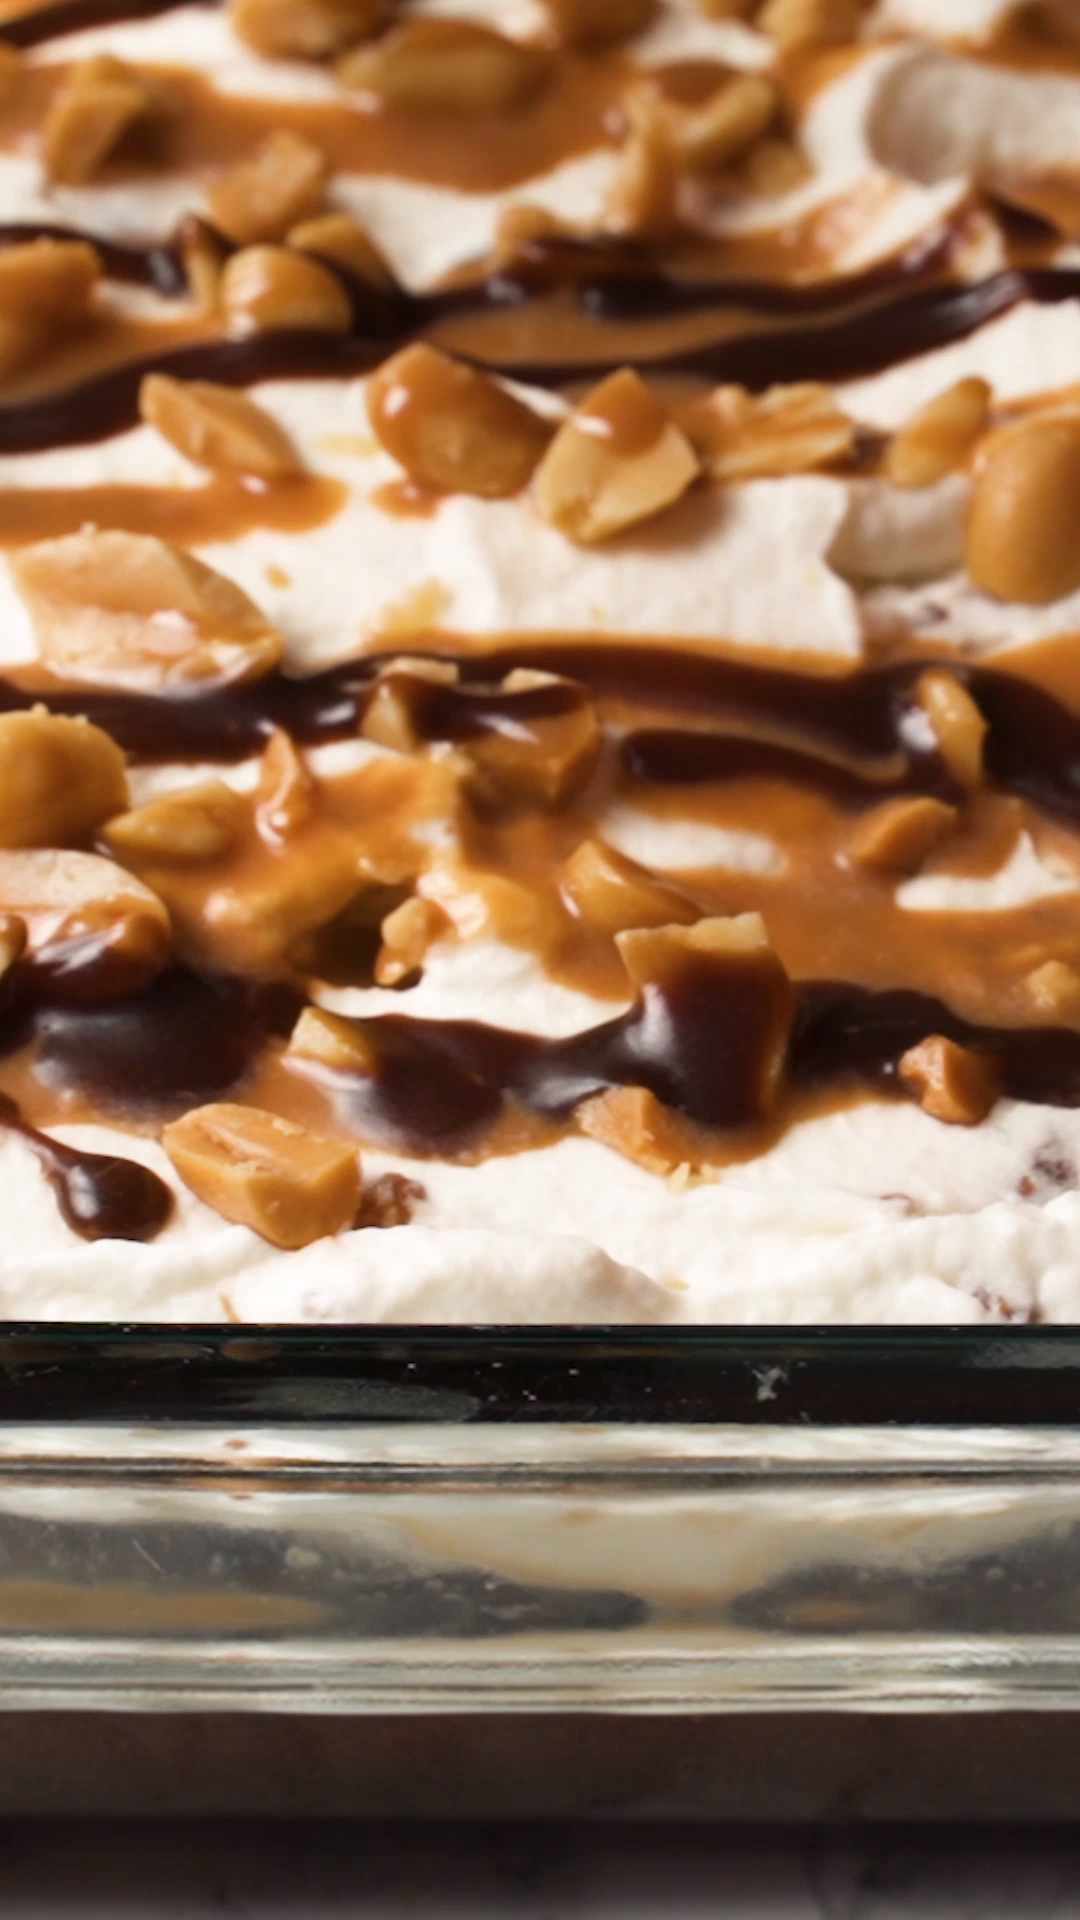 Poke Cake Recipe Snickers Poke Cake Recipe - chocolate cake, caramel, whipped cream, peanuts and chocolate sauce - OMG! There is NEVER any left! People go nuts over this cake!!Snickers Poke Cake Recipe - chocolate cake, caramel, whipped cream, peanuts and chocolate sauce - OMG! There is NEVER any left! People go nuts over this cake!!